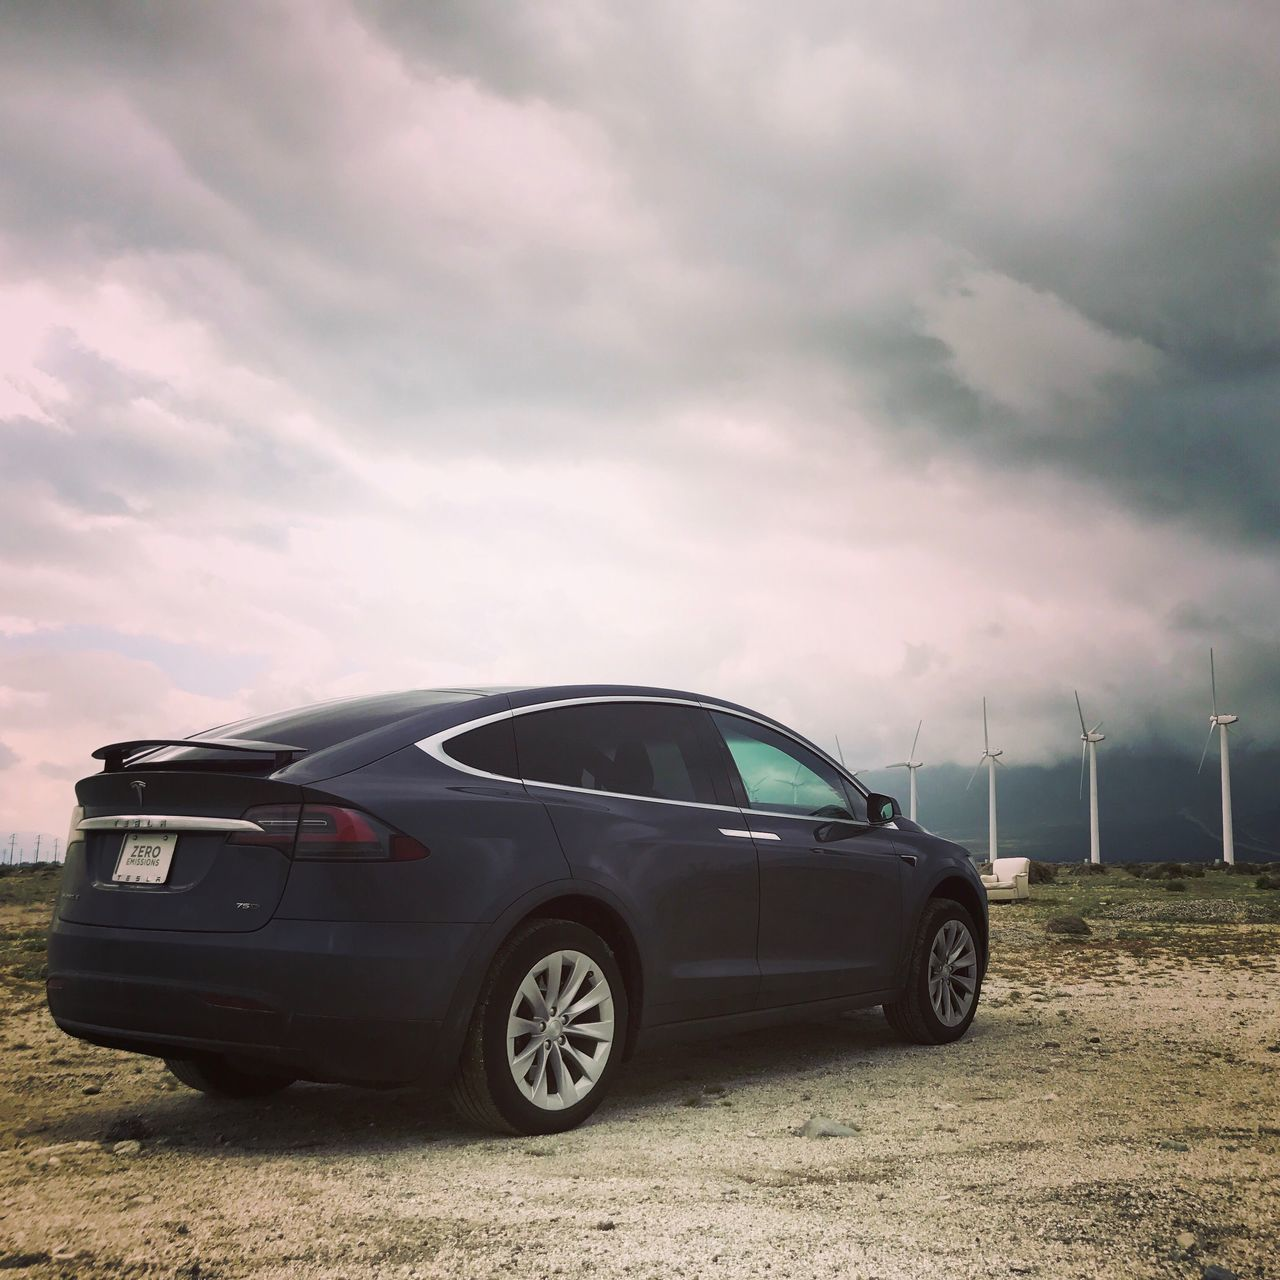 Zero Emissions // Car Cloud - Sky Sky Transportation Mode Of Transport Land Vehicle Stationary Outdoors No People Nature Day Tesla The Future Is Electric